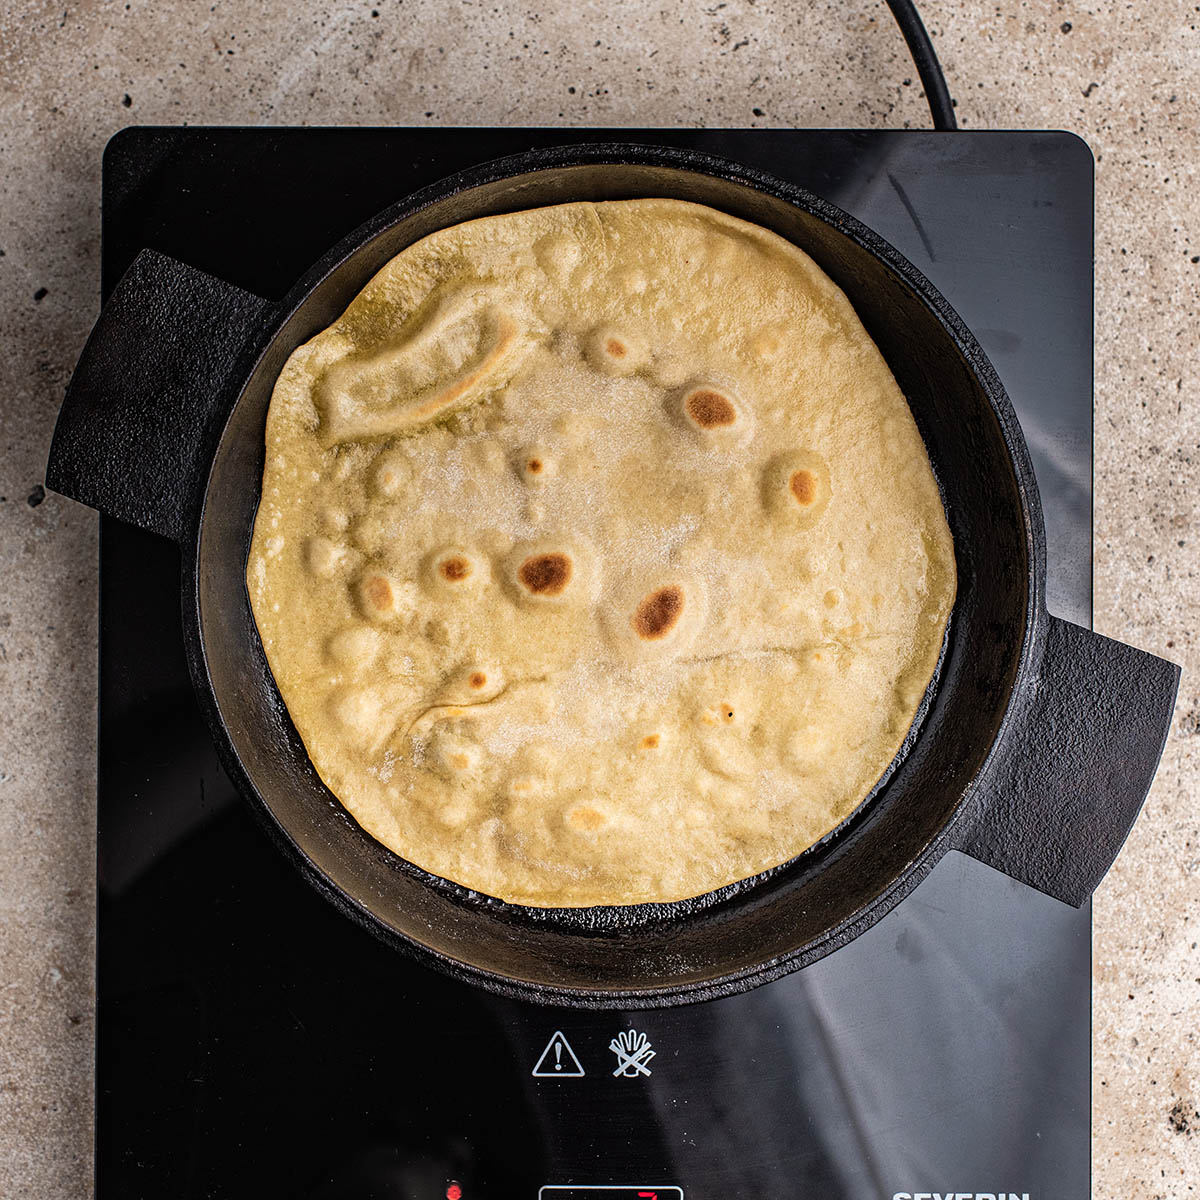 Tortilla in a frying pan after flipping.